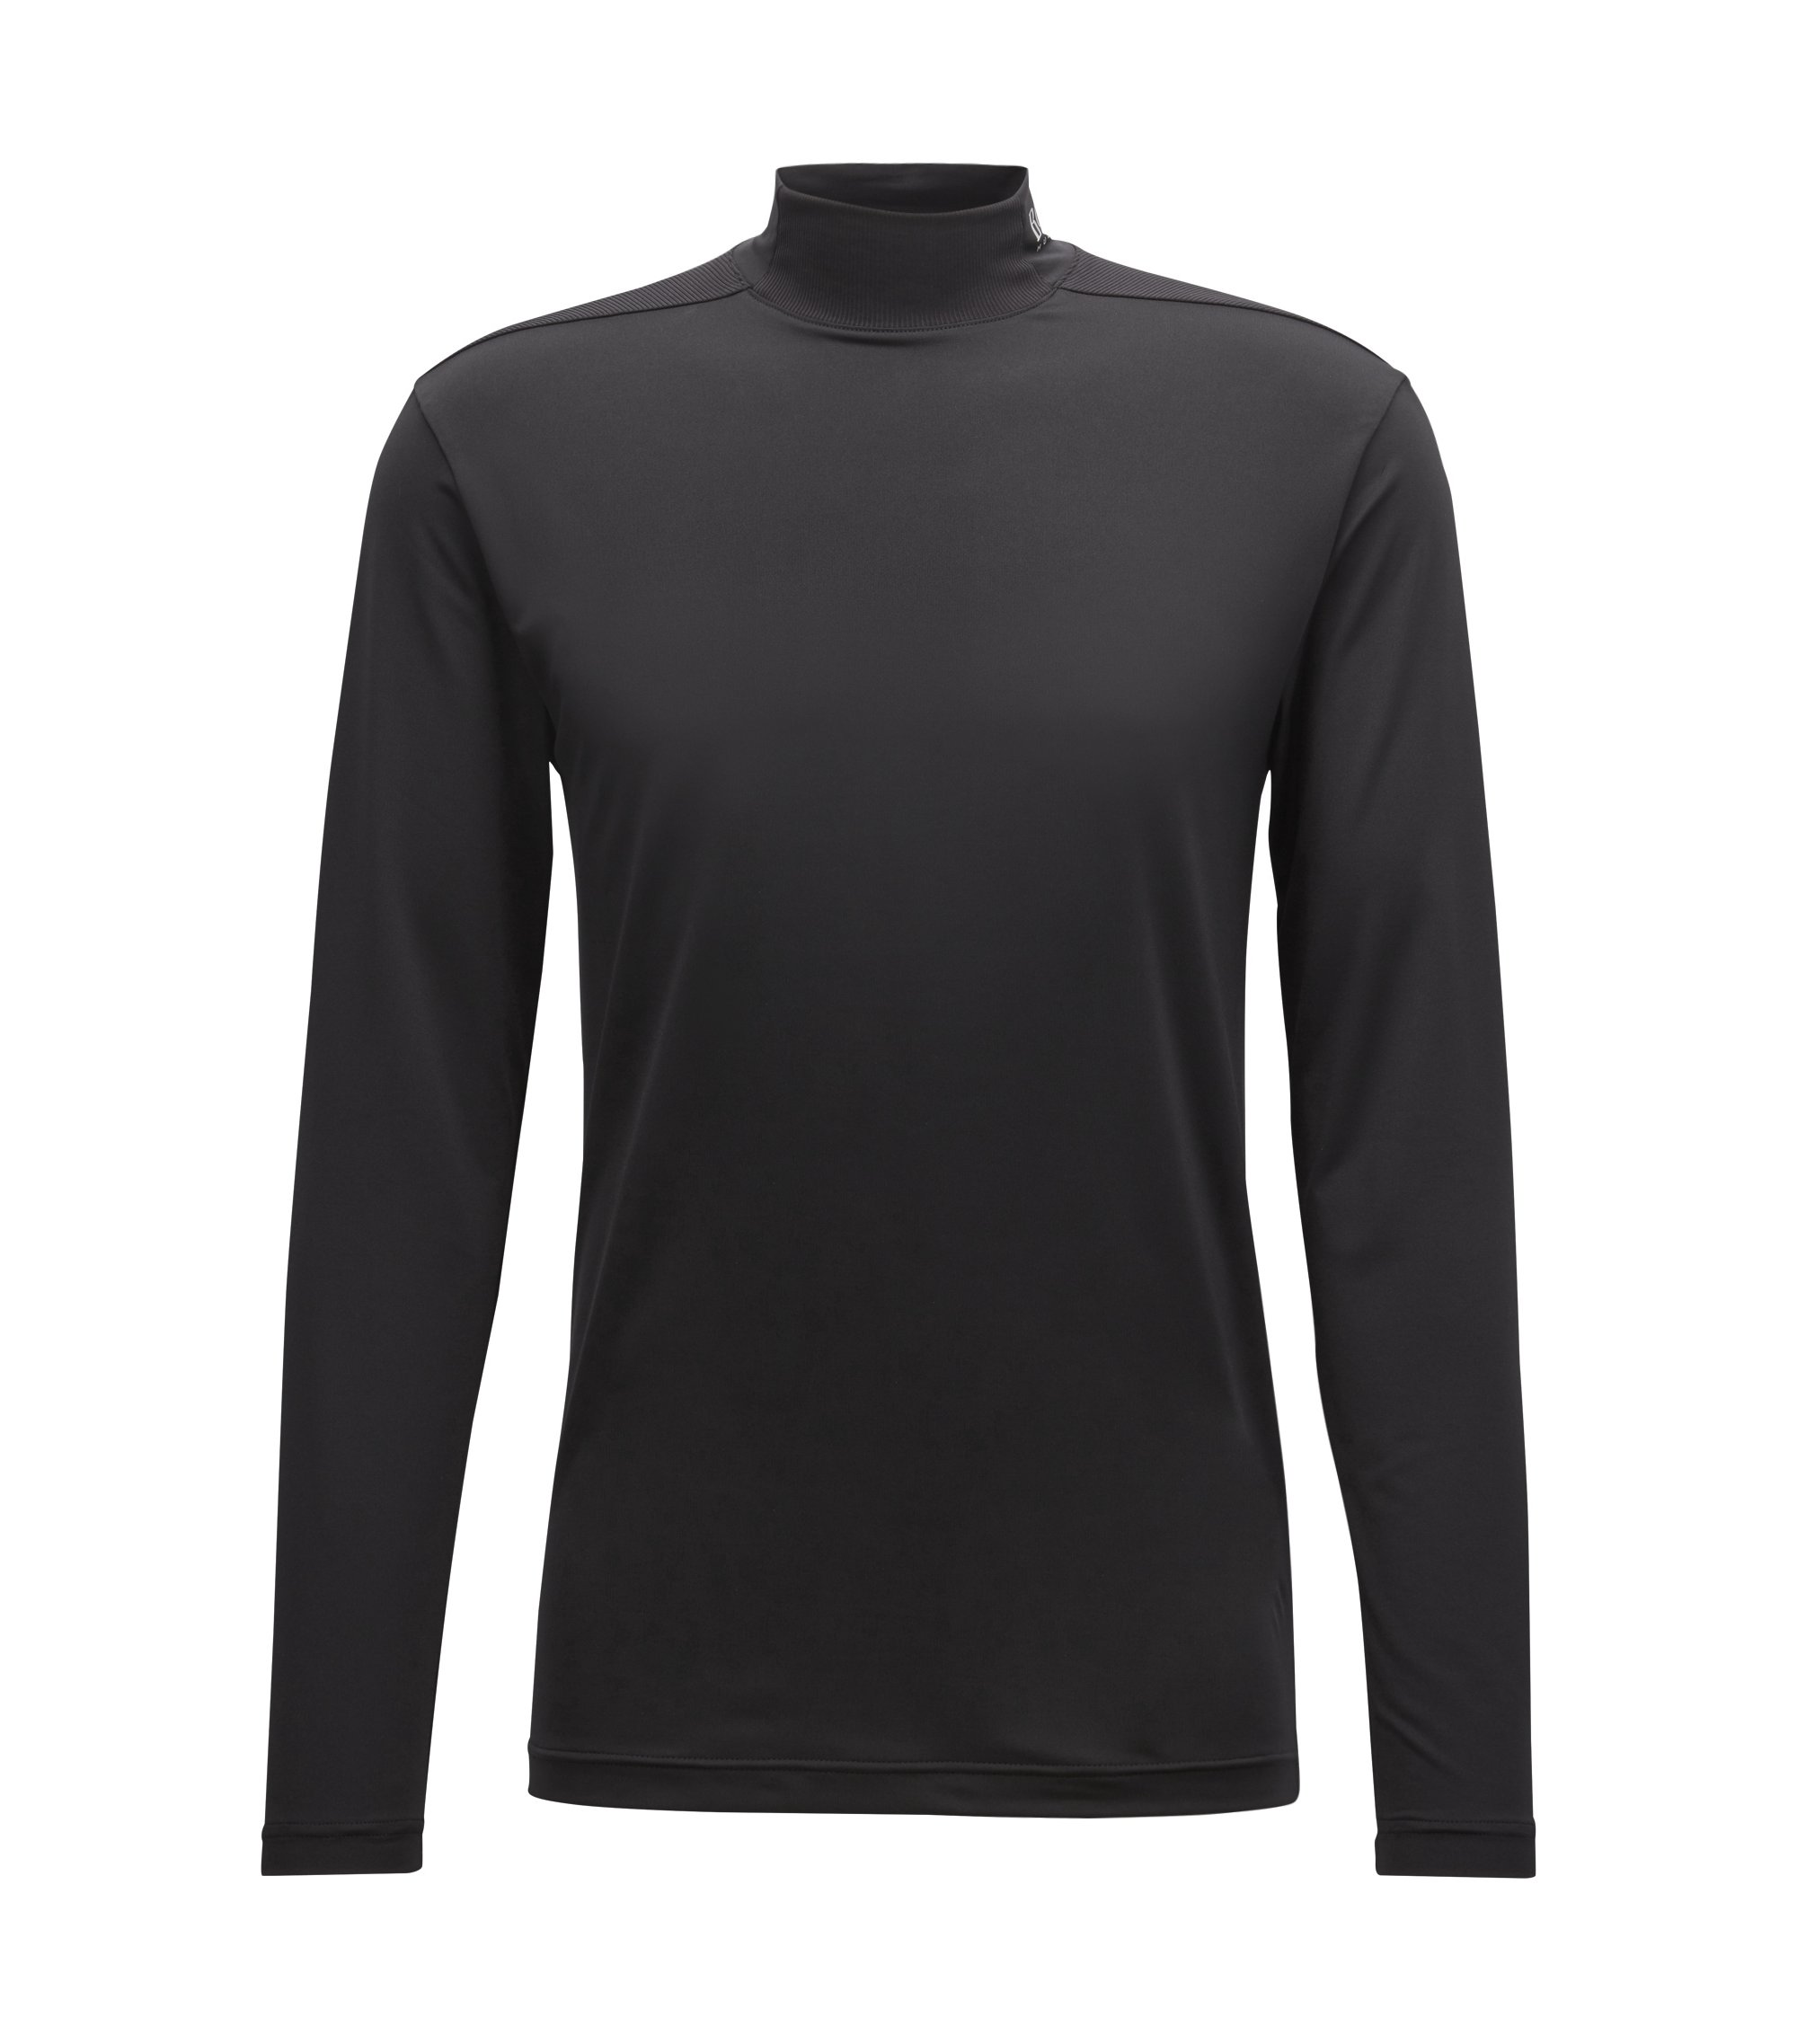 Extra-slim-fit jersey top with moisture management, Black